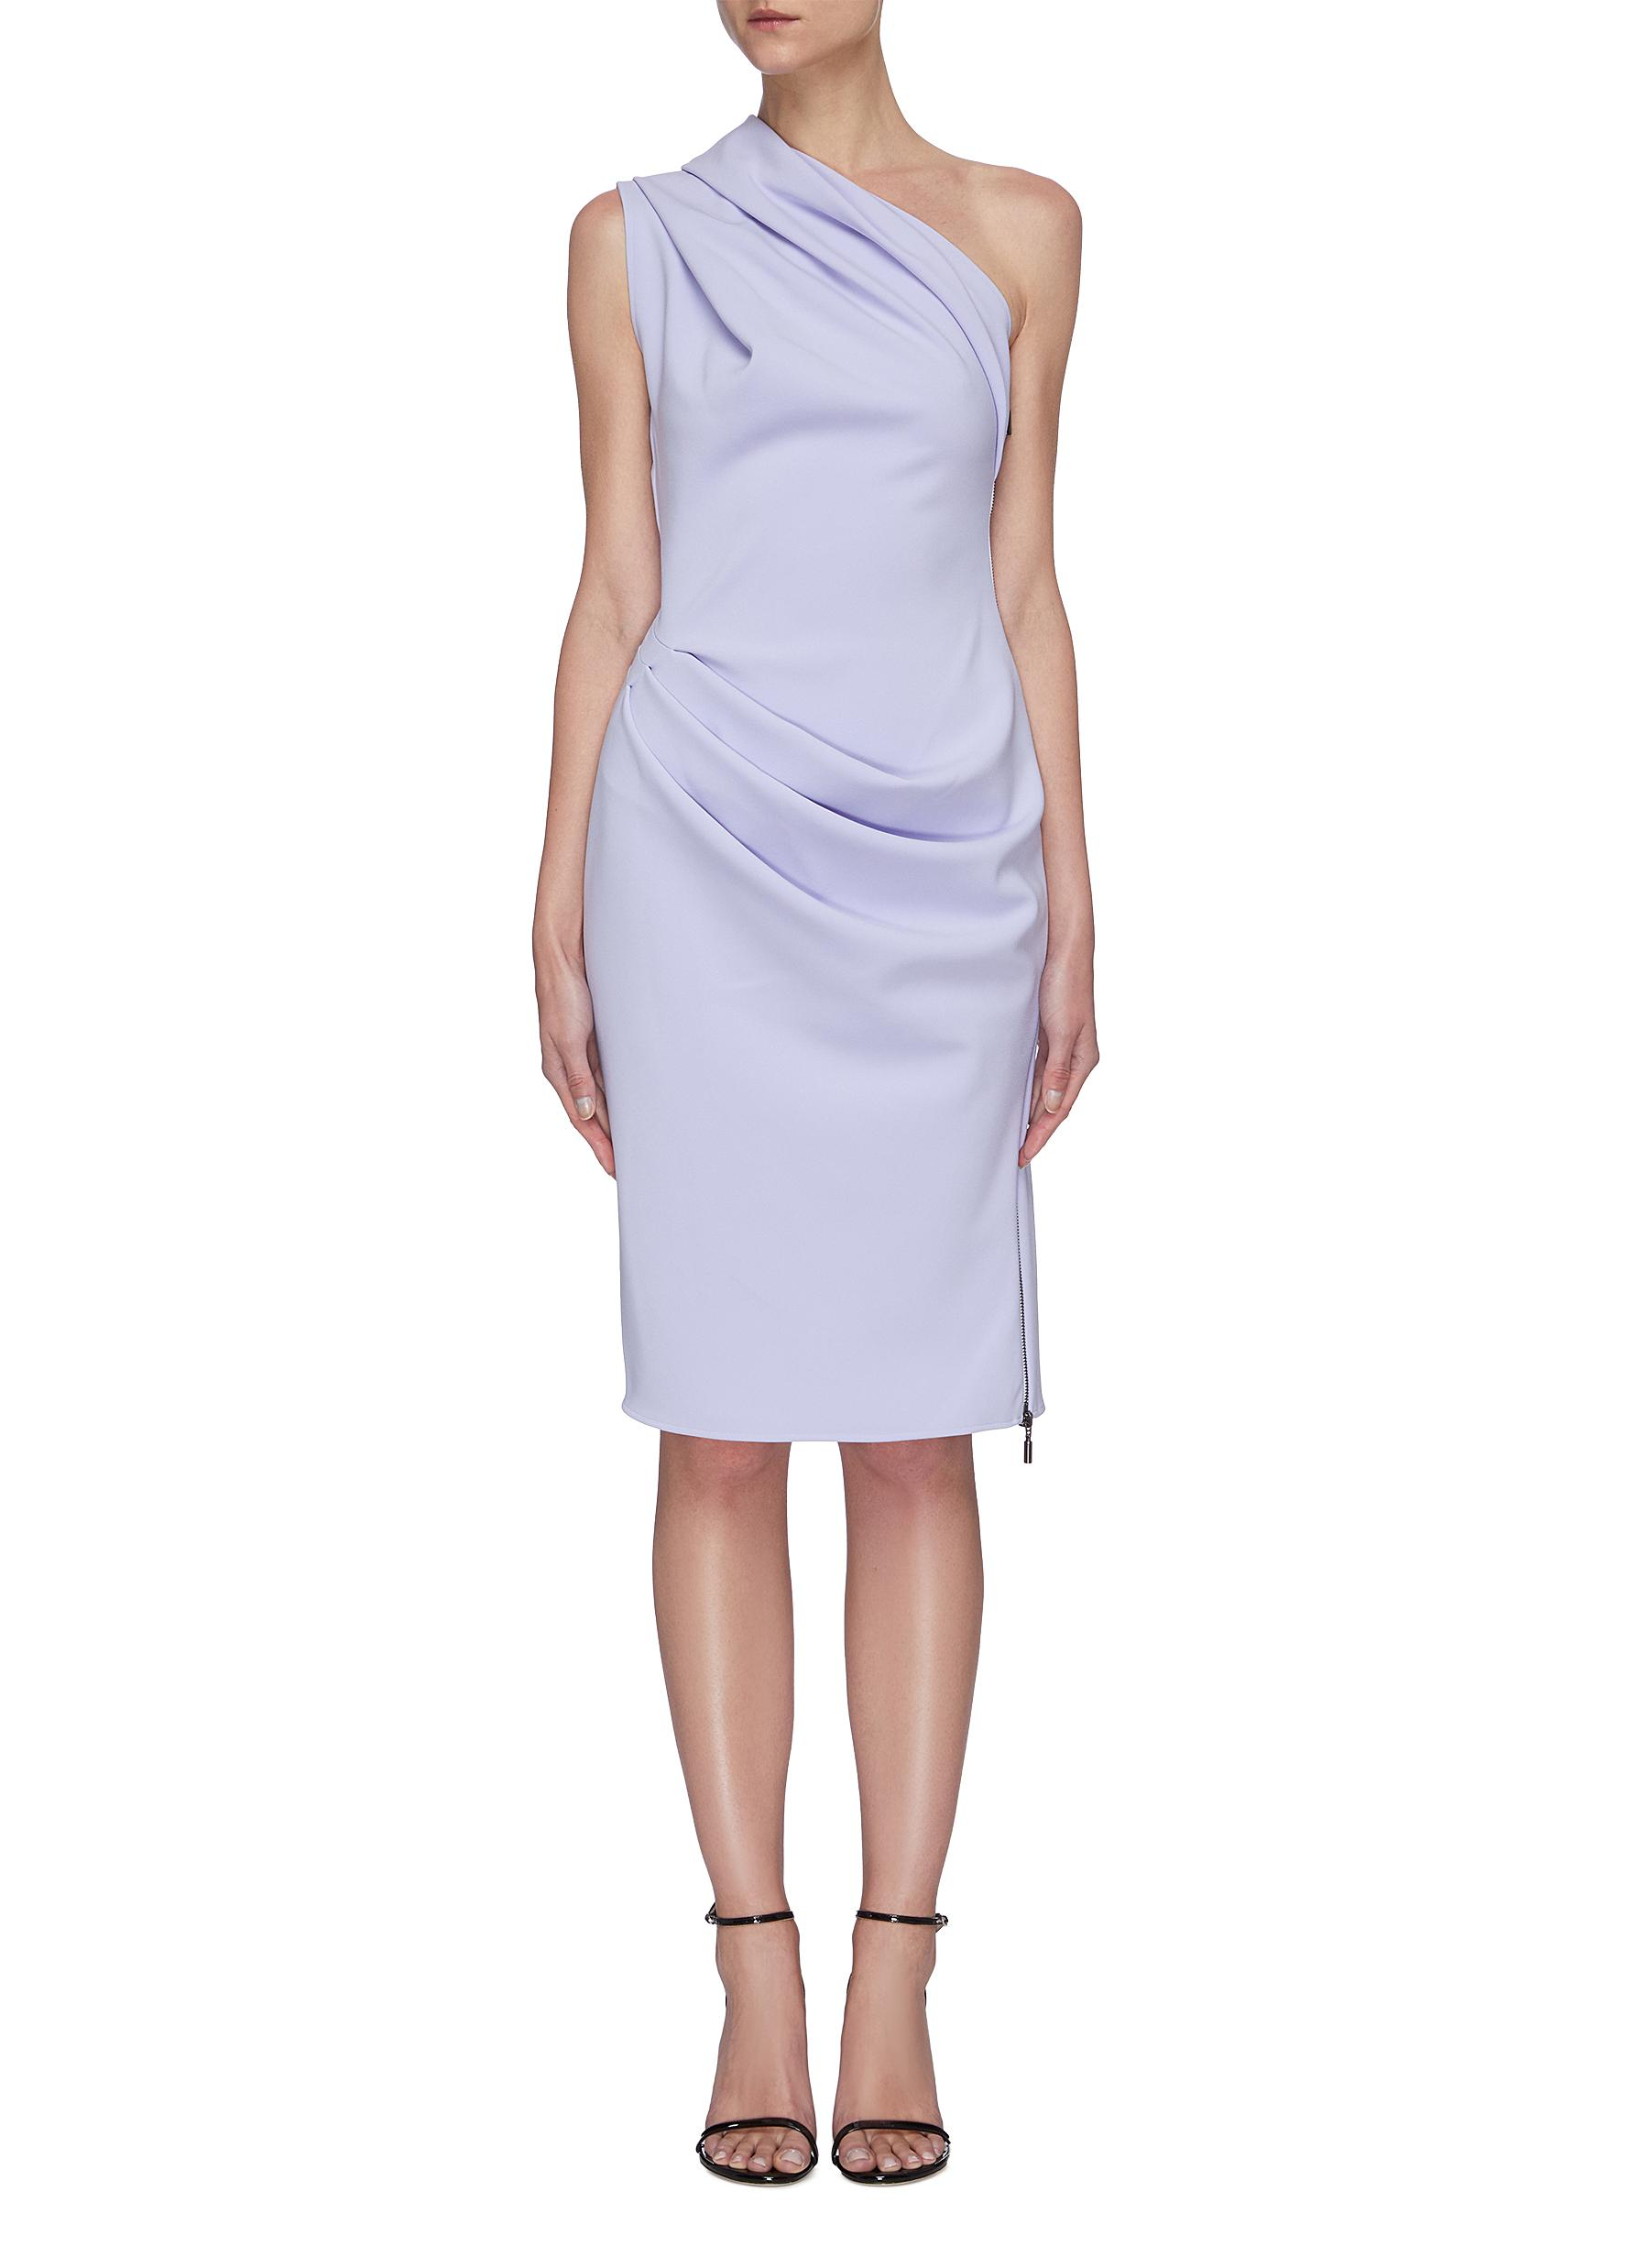 Buy Maticevski Dresses Effusive' One Shoulder Dress